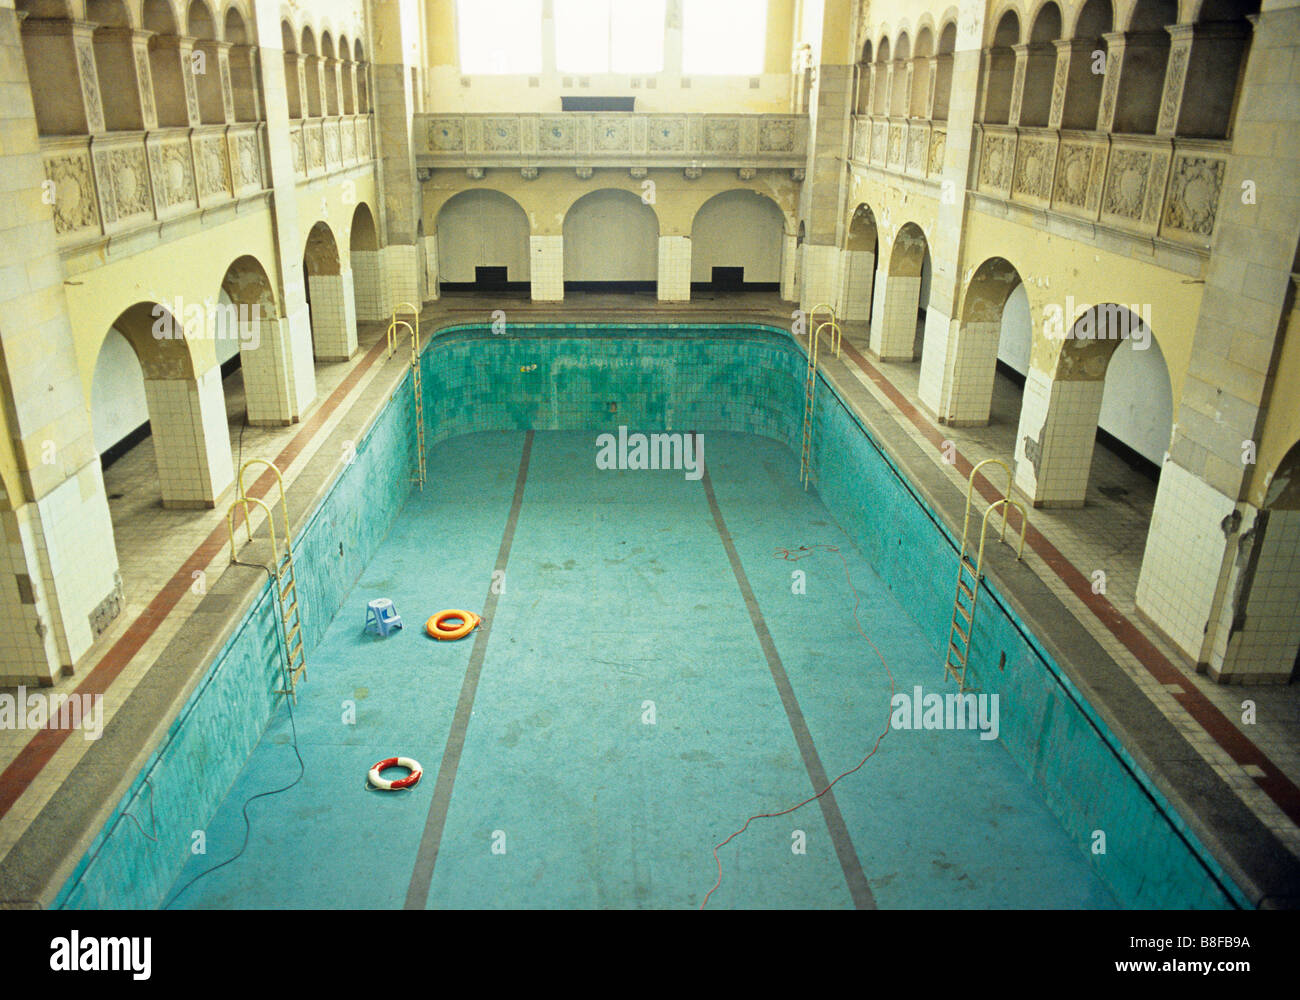 view into an old empty indoor swimming pool stock photo 22465782 alamy